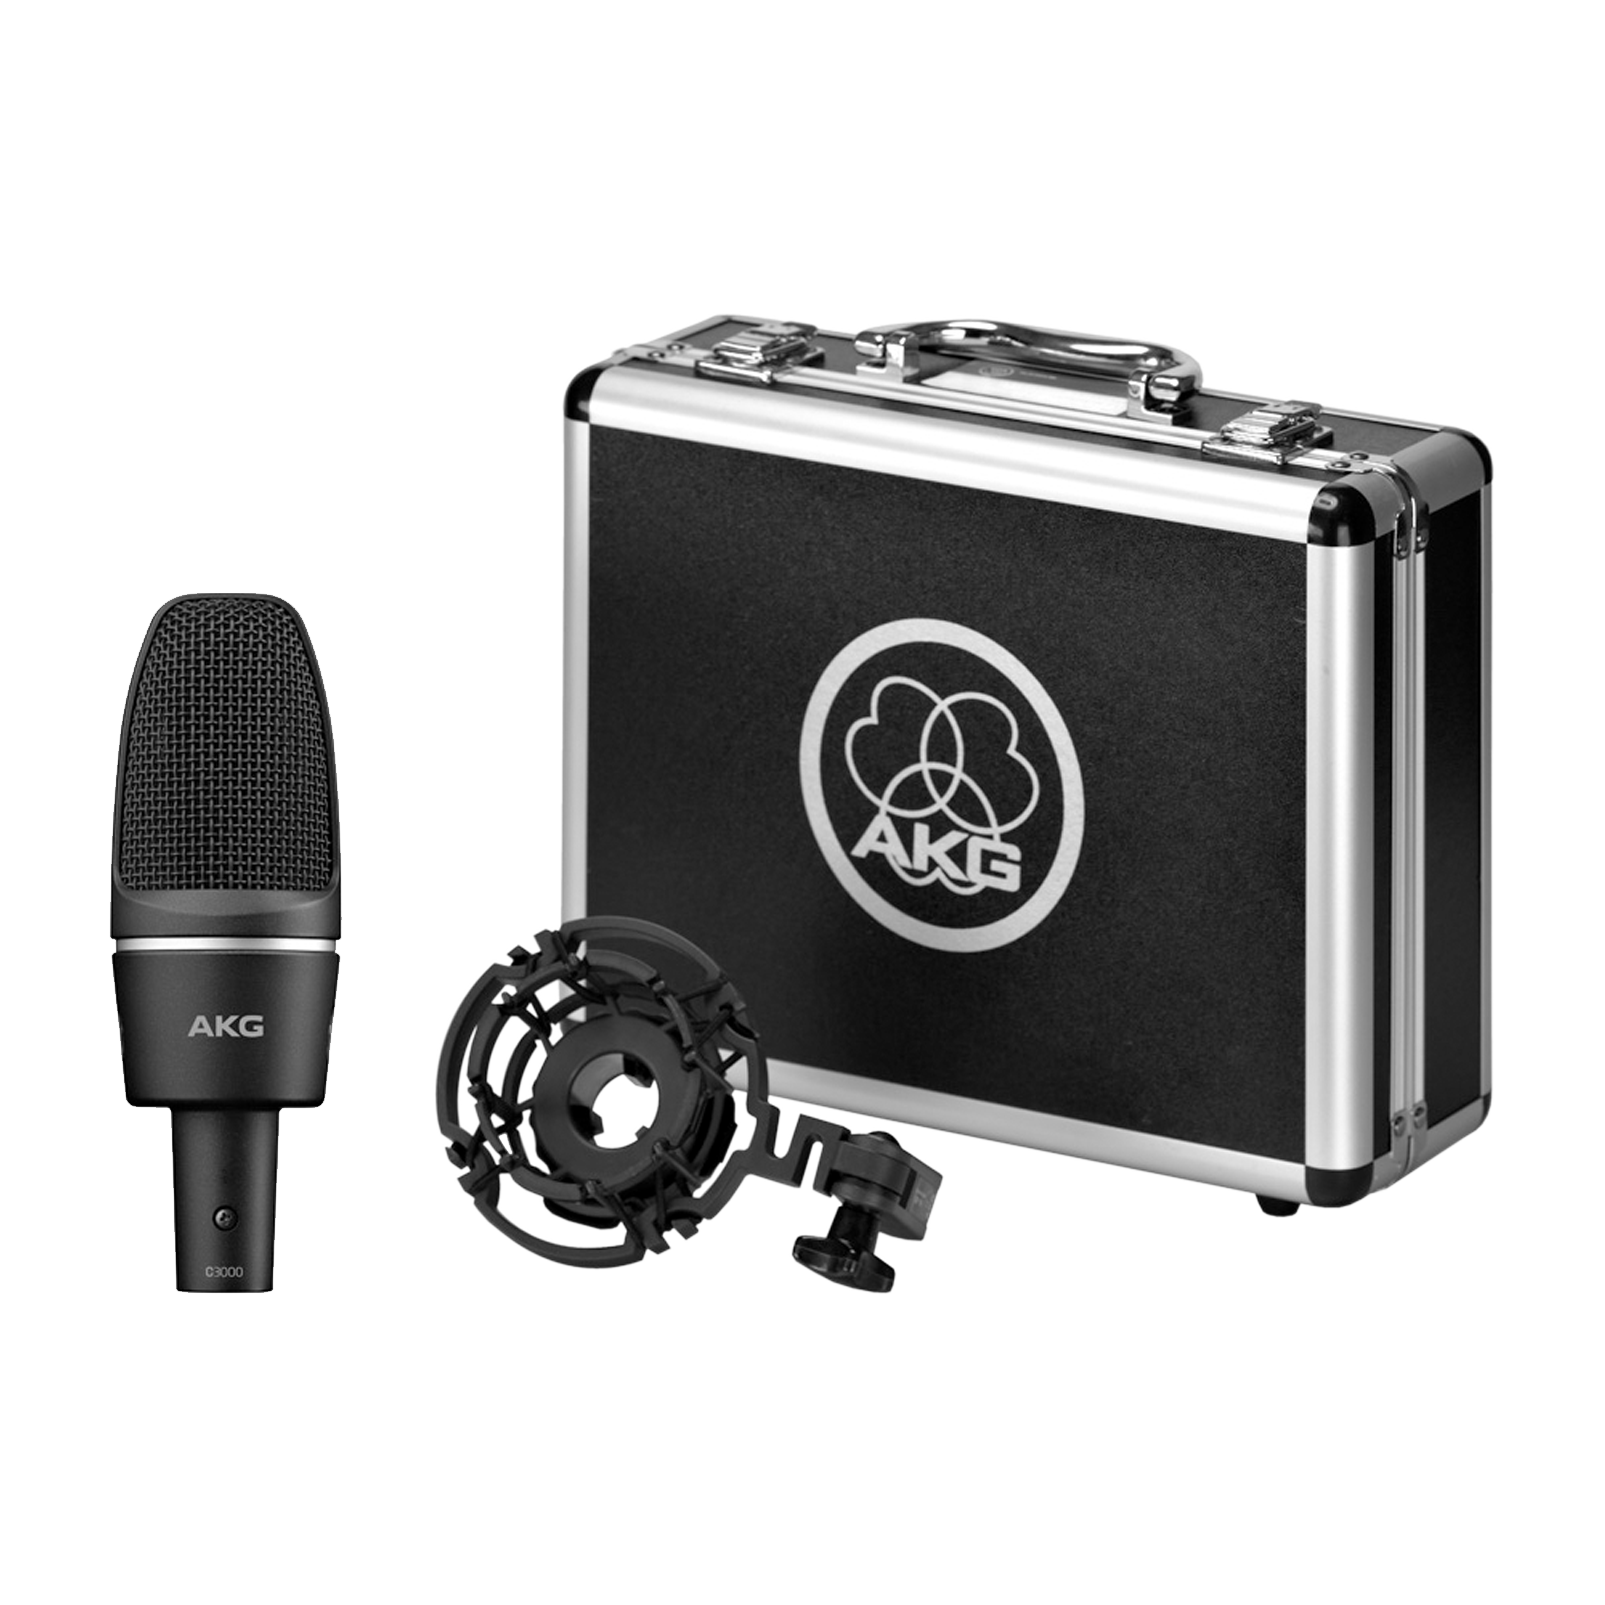 AKG_c3000_package_content